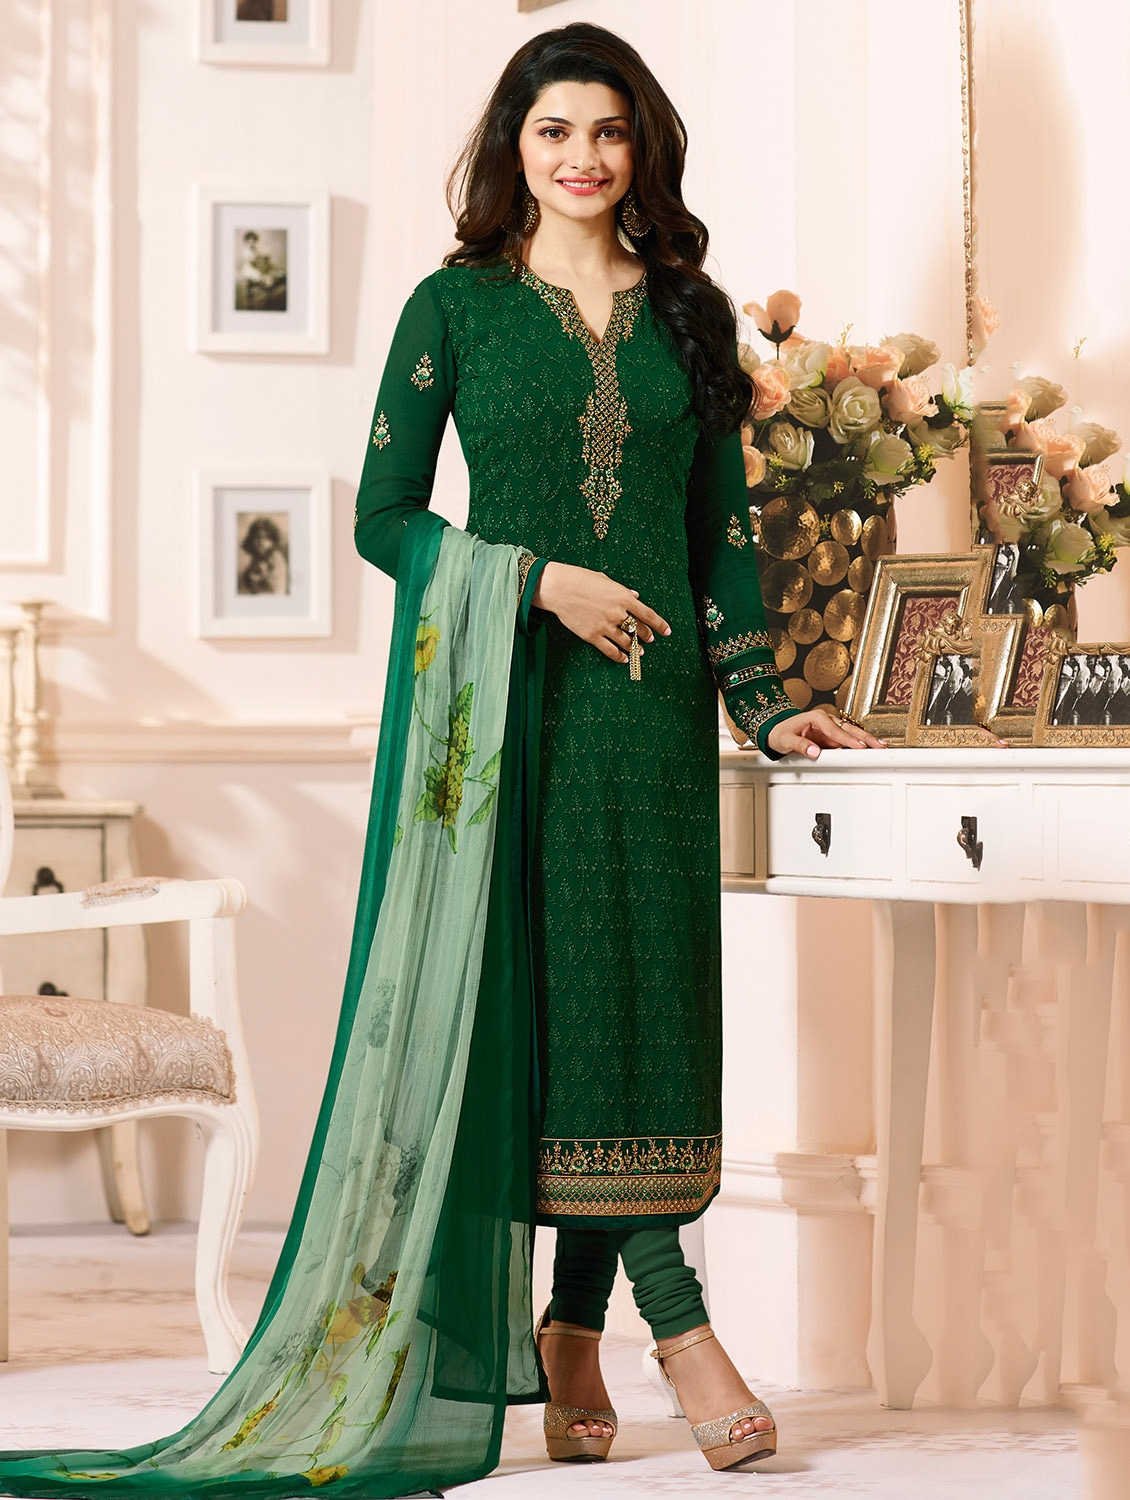 15a74c03f2f Buy Green Georgette Churidaar Suits Semistitched Suit for Women from The  Fashion Attire for ₹4049 at 49% off